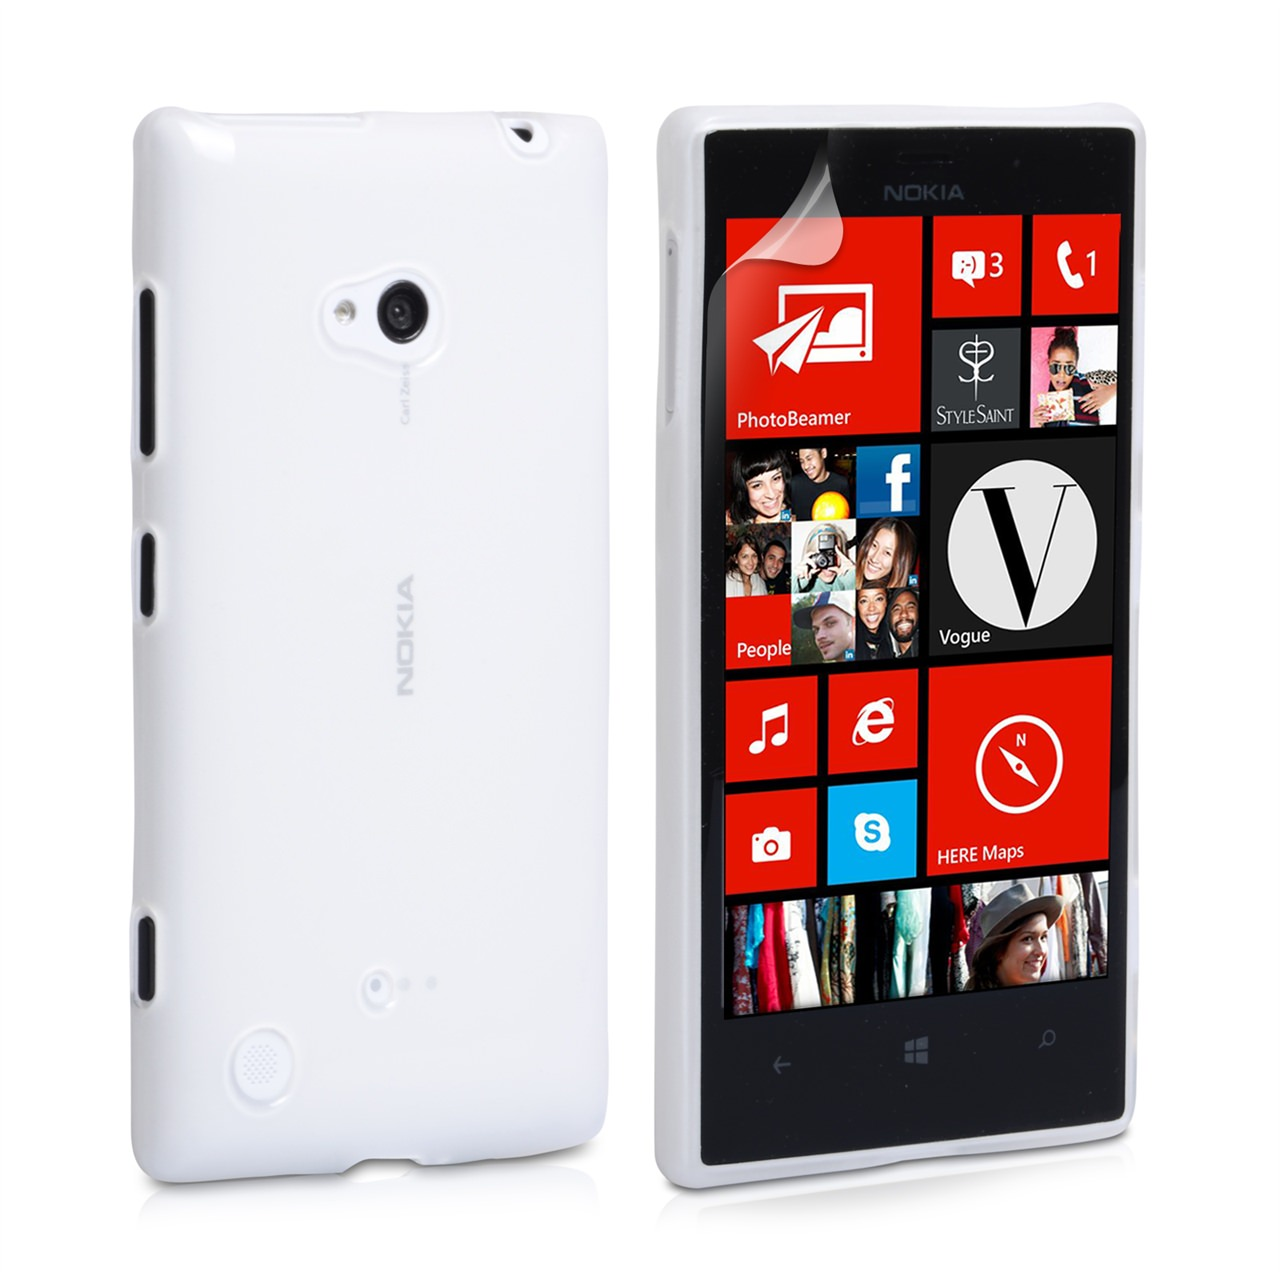 YouSave Accessories Nokia Lumia 720 Gel Case - Clear